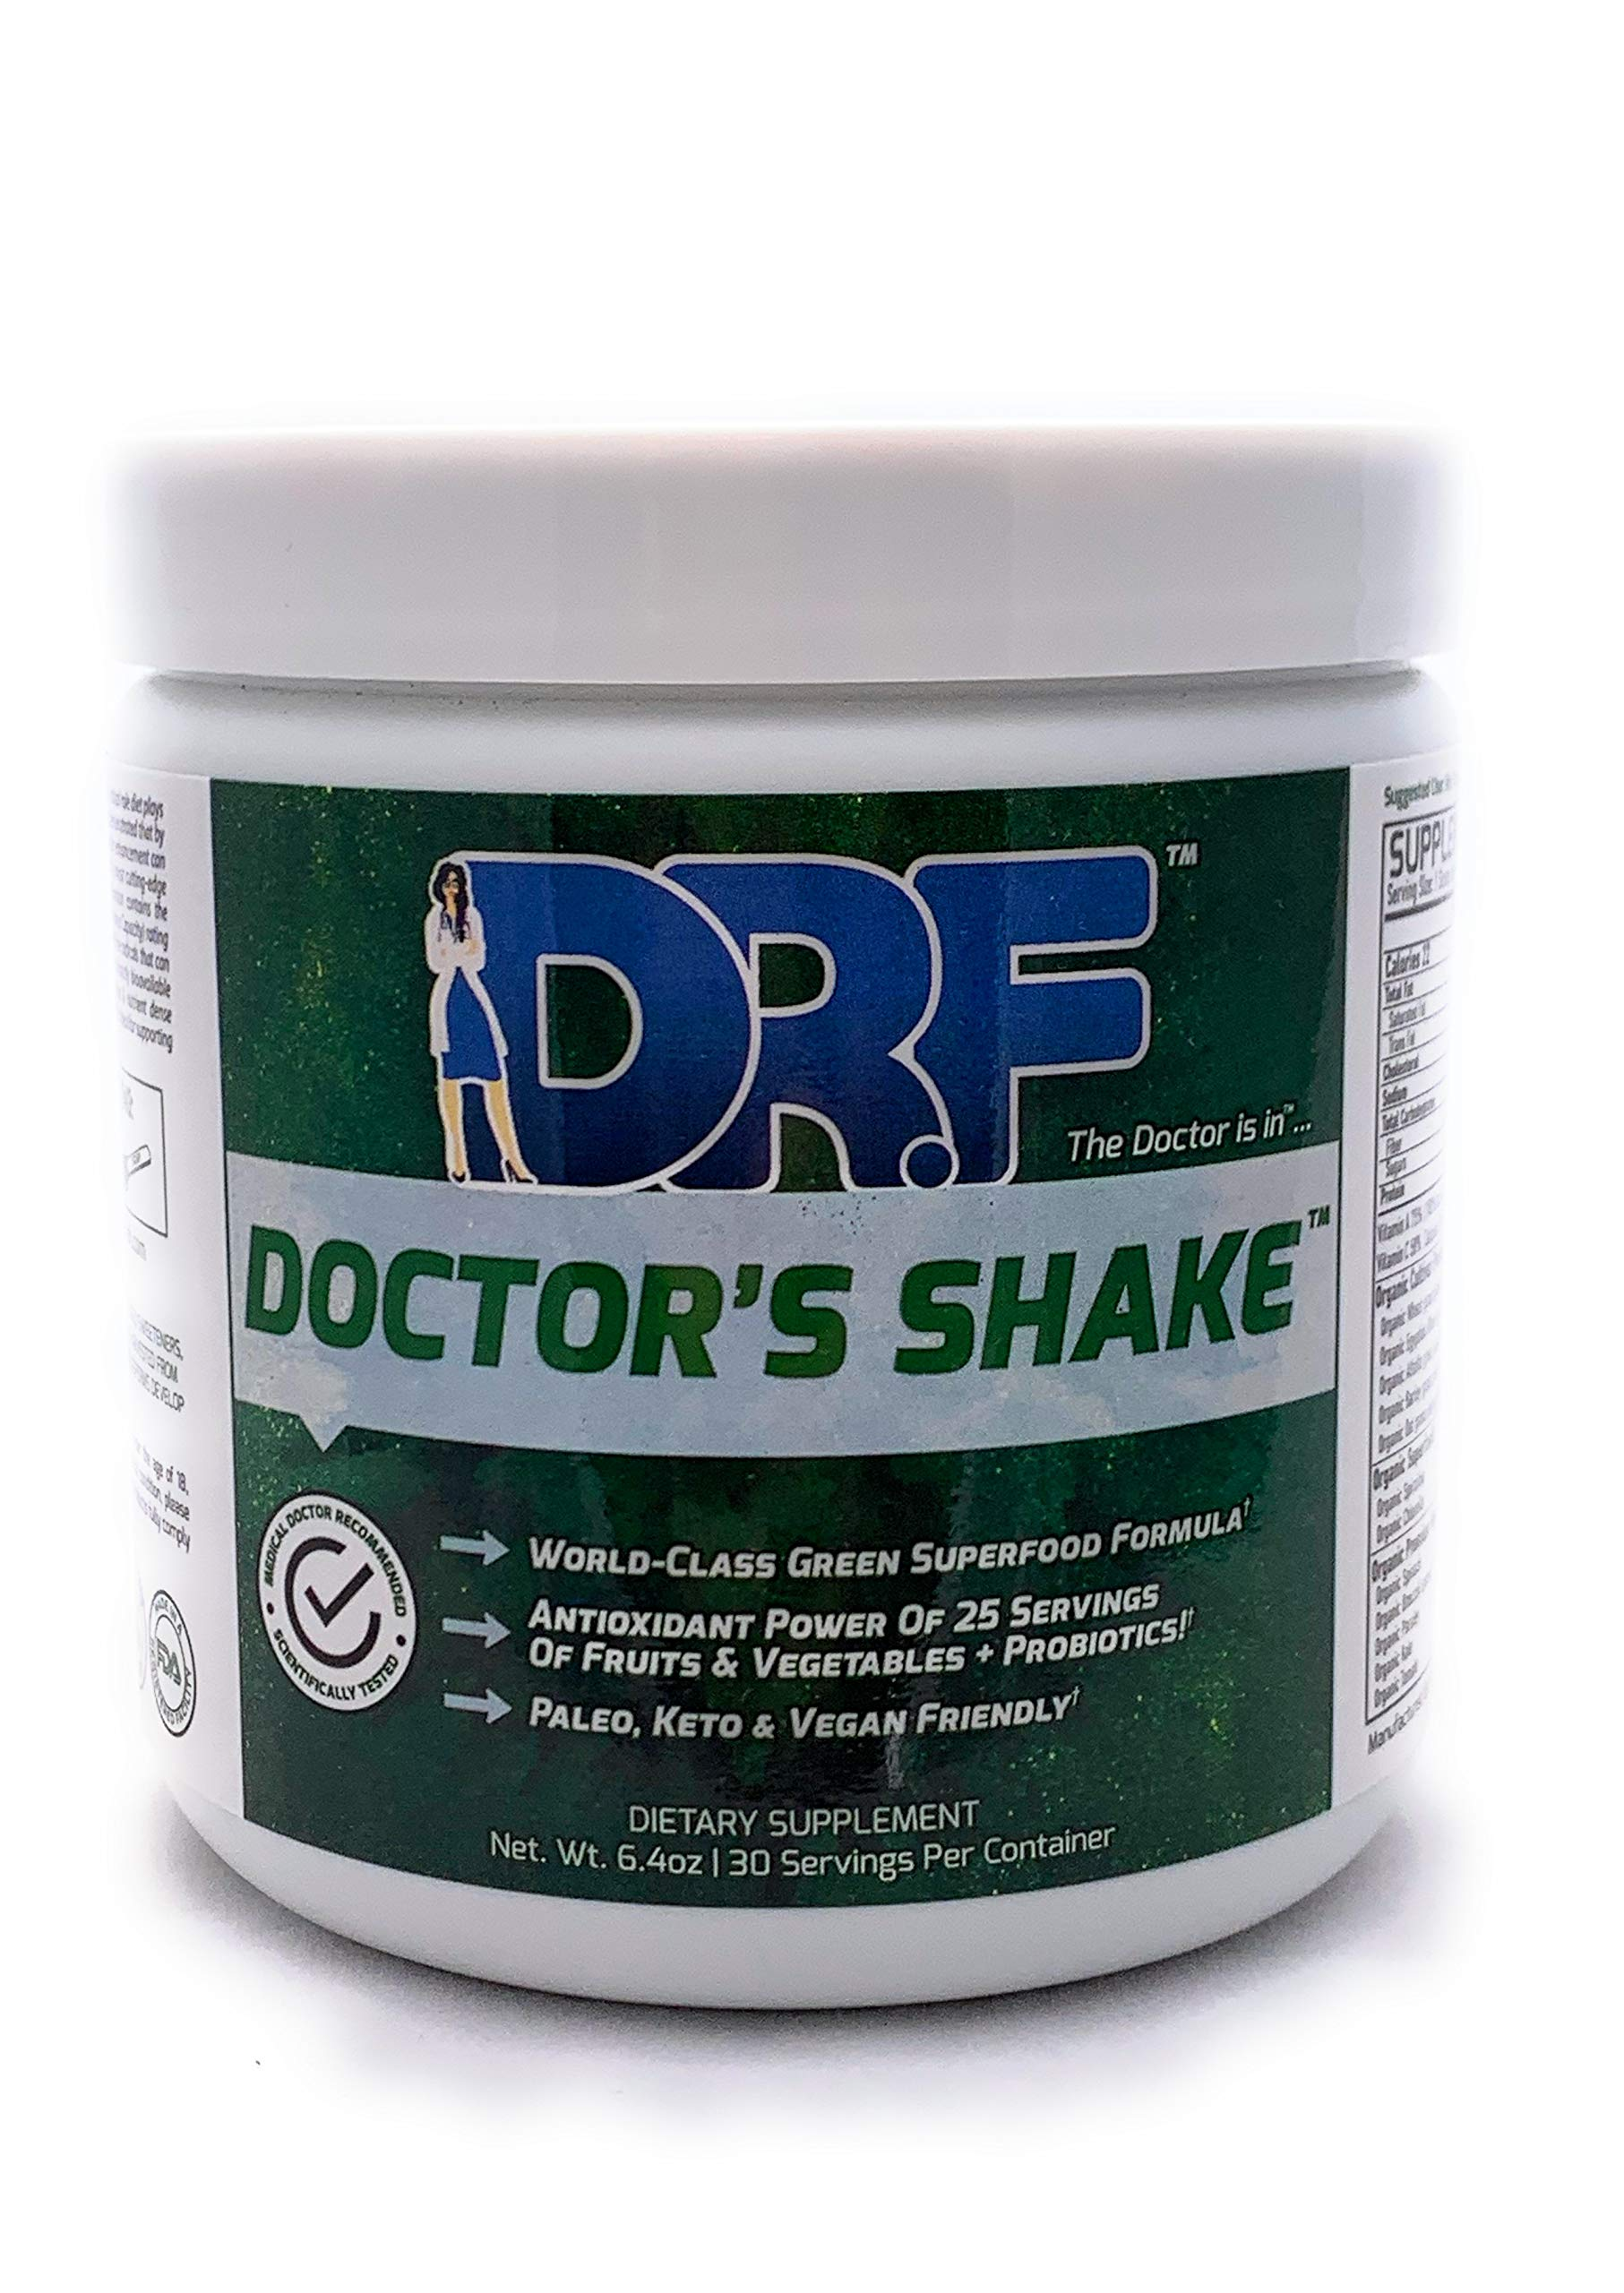 Organic Doctor's Shake by Dr. Farrah World Renown Medical Doctor   World Class Organic Green Superfood Formula   Antioxidant Power of 25 Servings of Fruits and Vegetables & Probiotics